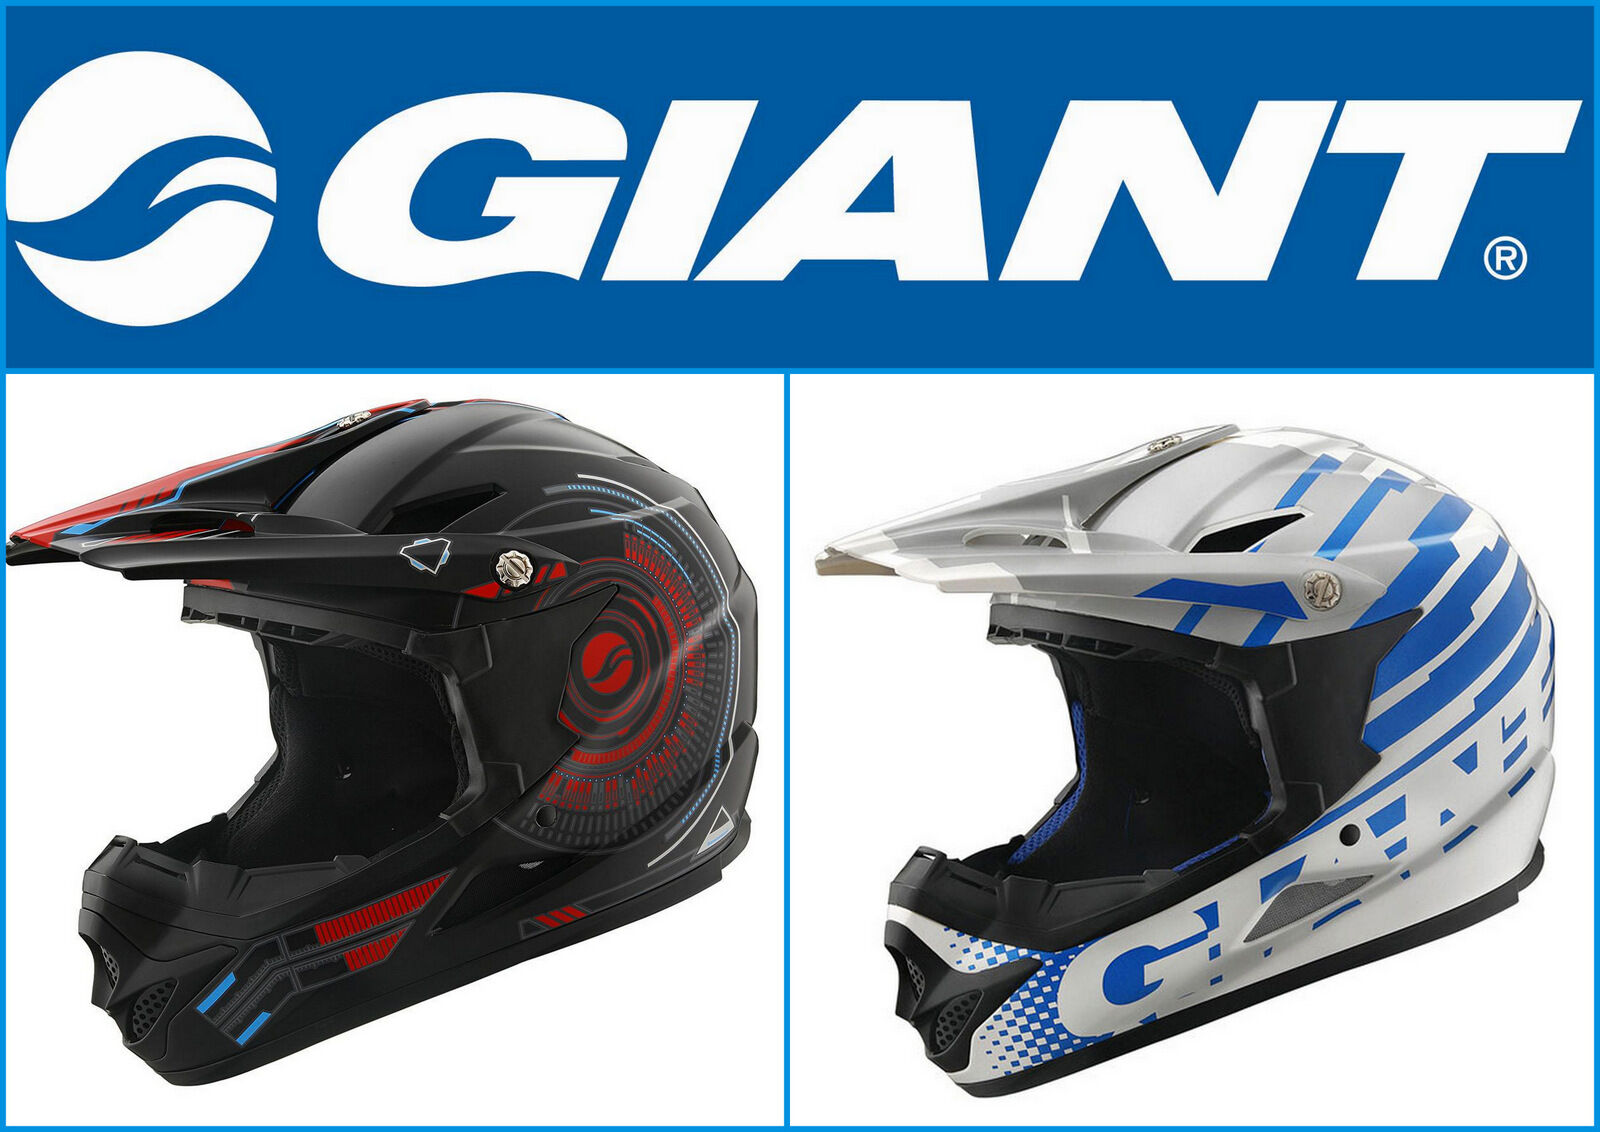 Casco Casco Casco integrale bici GIANT FACTOR full face helmet bike DH downhill enduro mtb a575e5